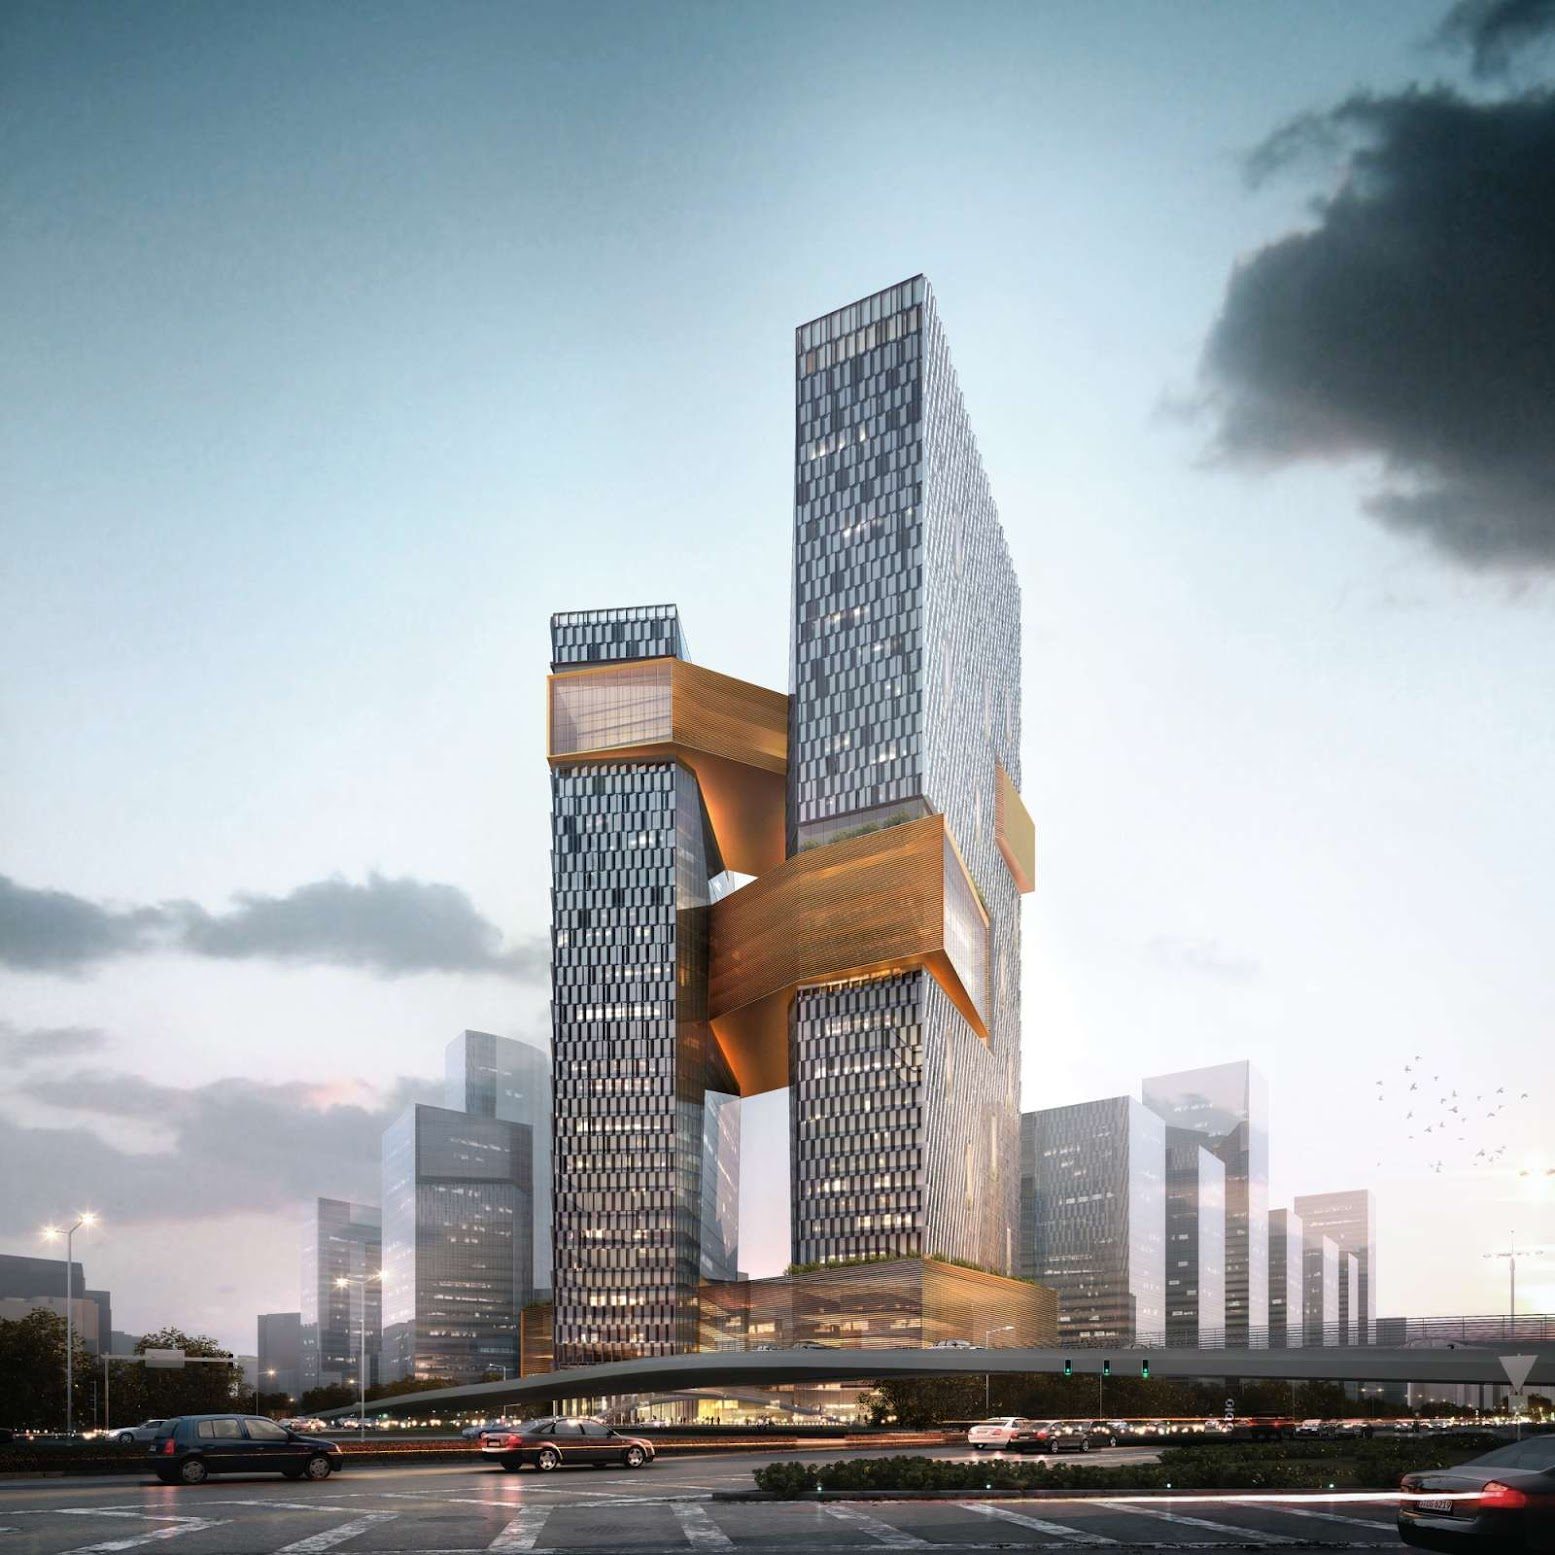 Shenzhen, Quantung, Cina: [TENCENT CORPORATE HEADQUARTERS BY NBBJ]